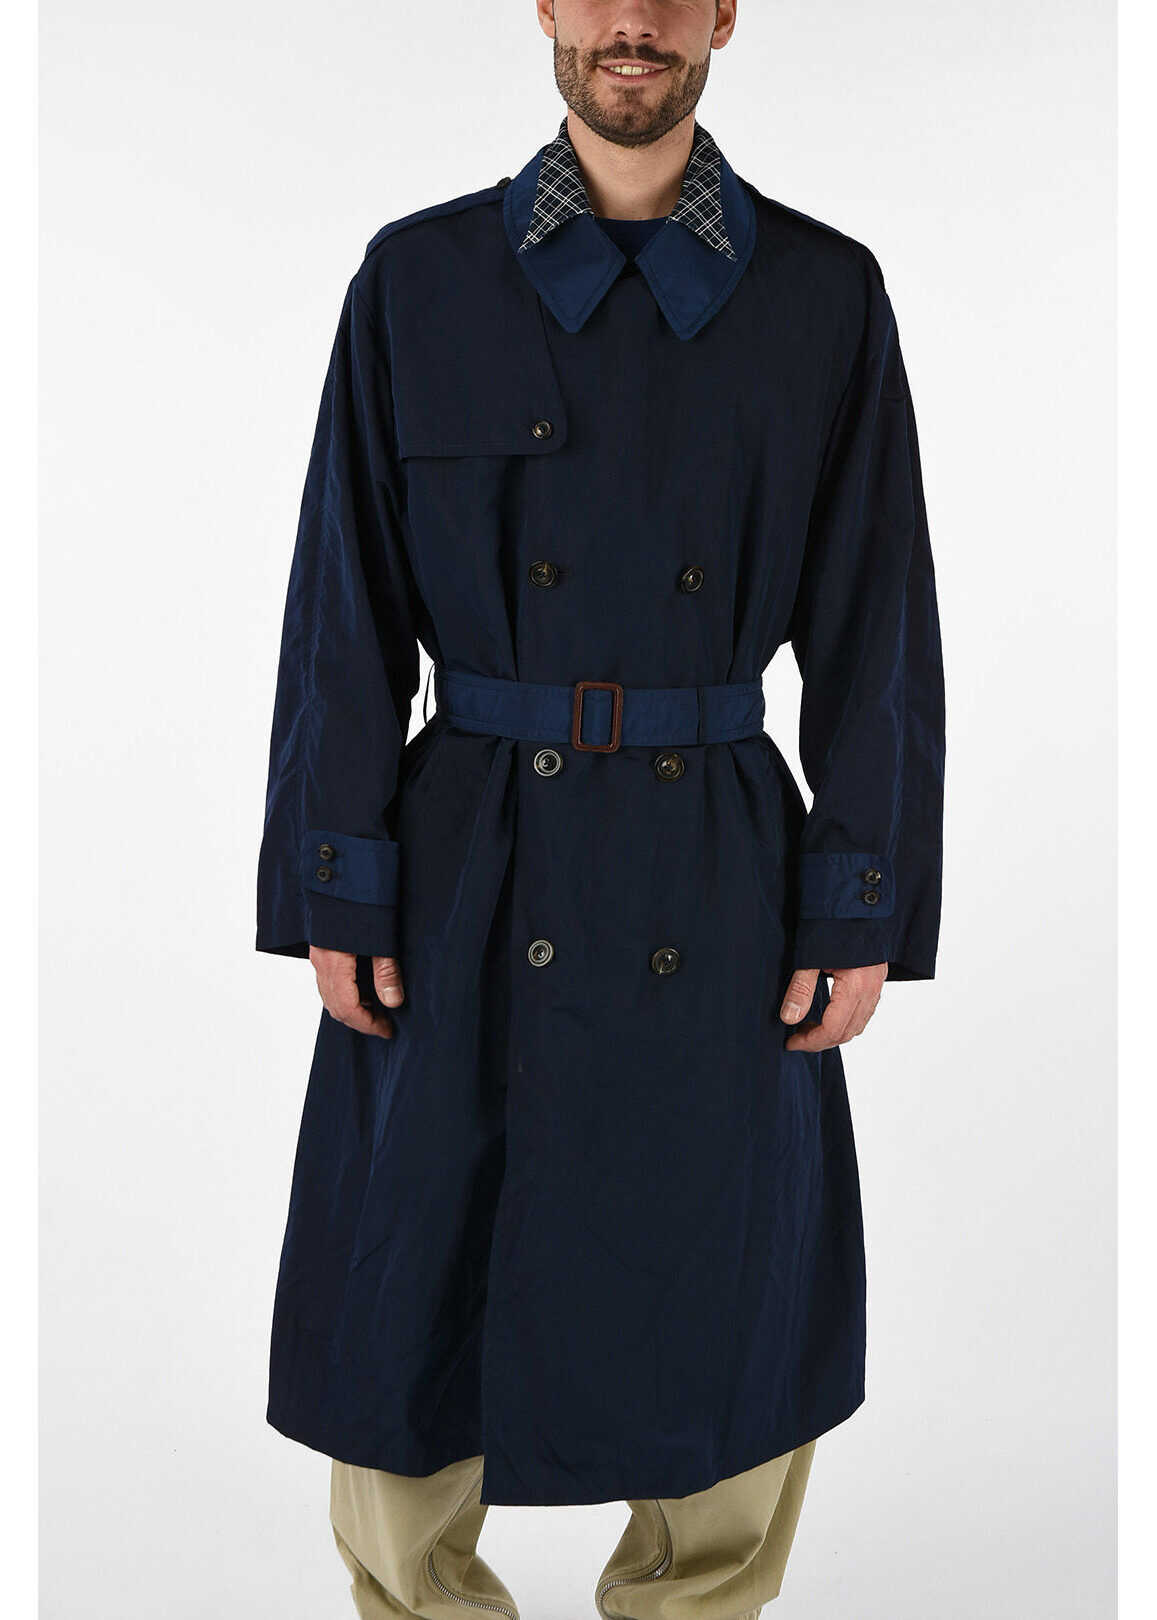 MM14 Tech Trench Coat with Shirt thumbnail